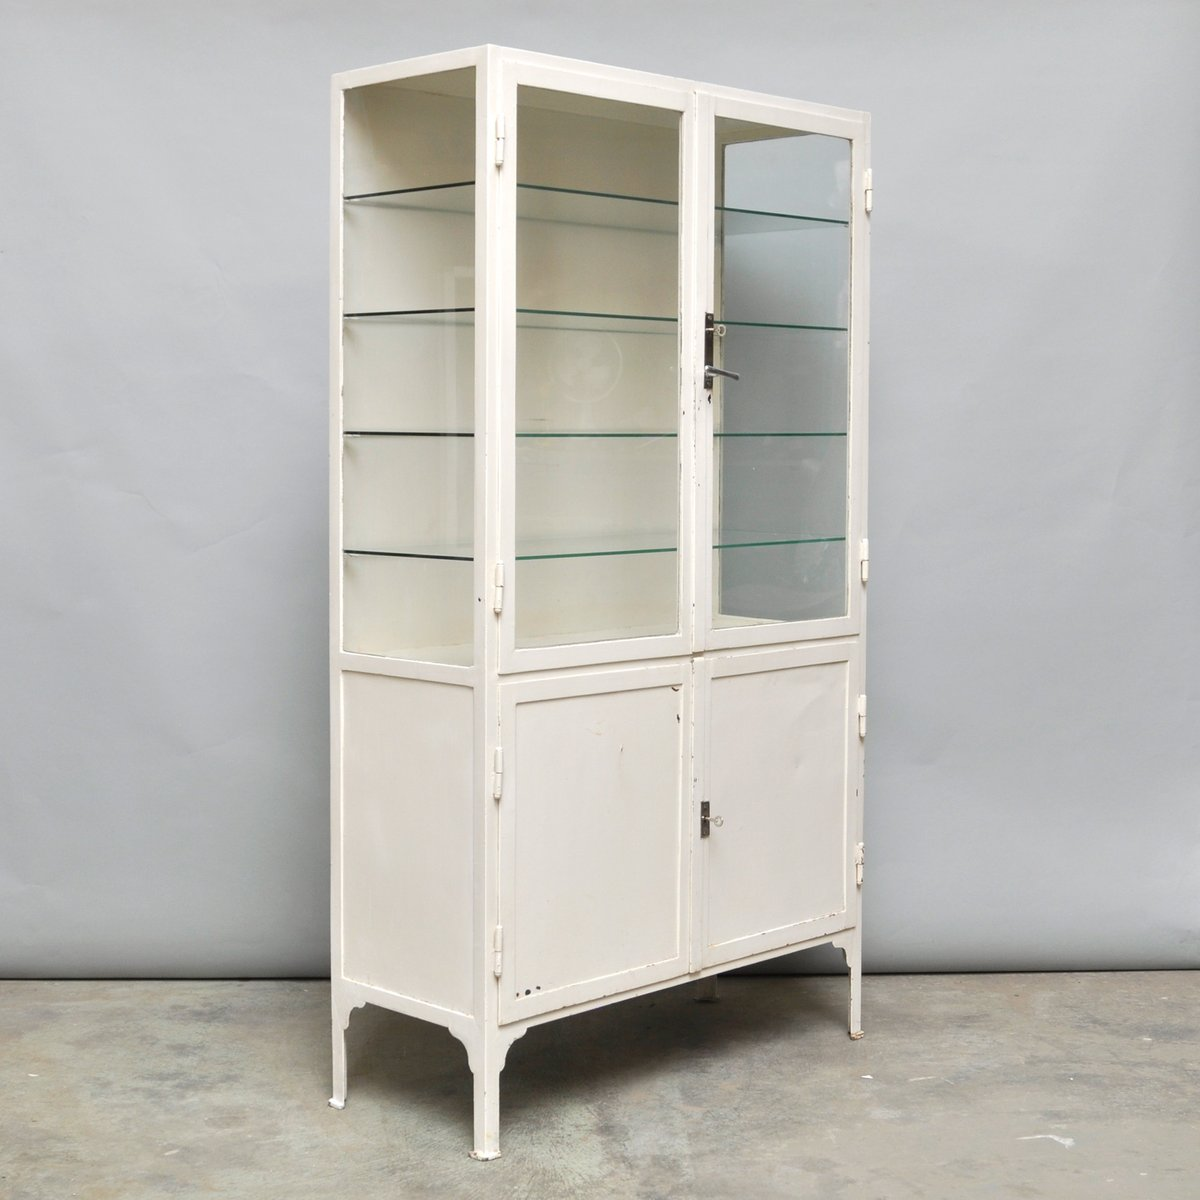 armoire m dicale vintage en acier et verre 1940s en vente. Black Bedroom Furniture Sets. Home Design Ideas